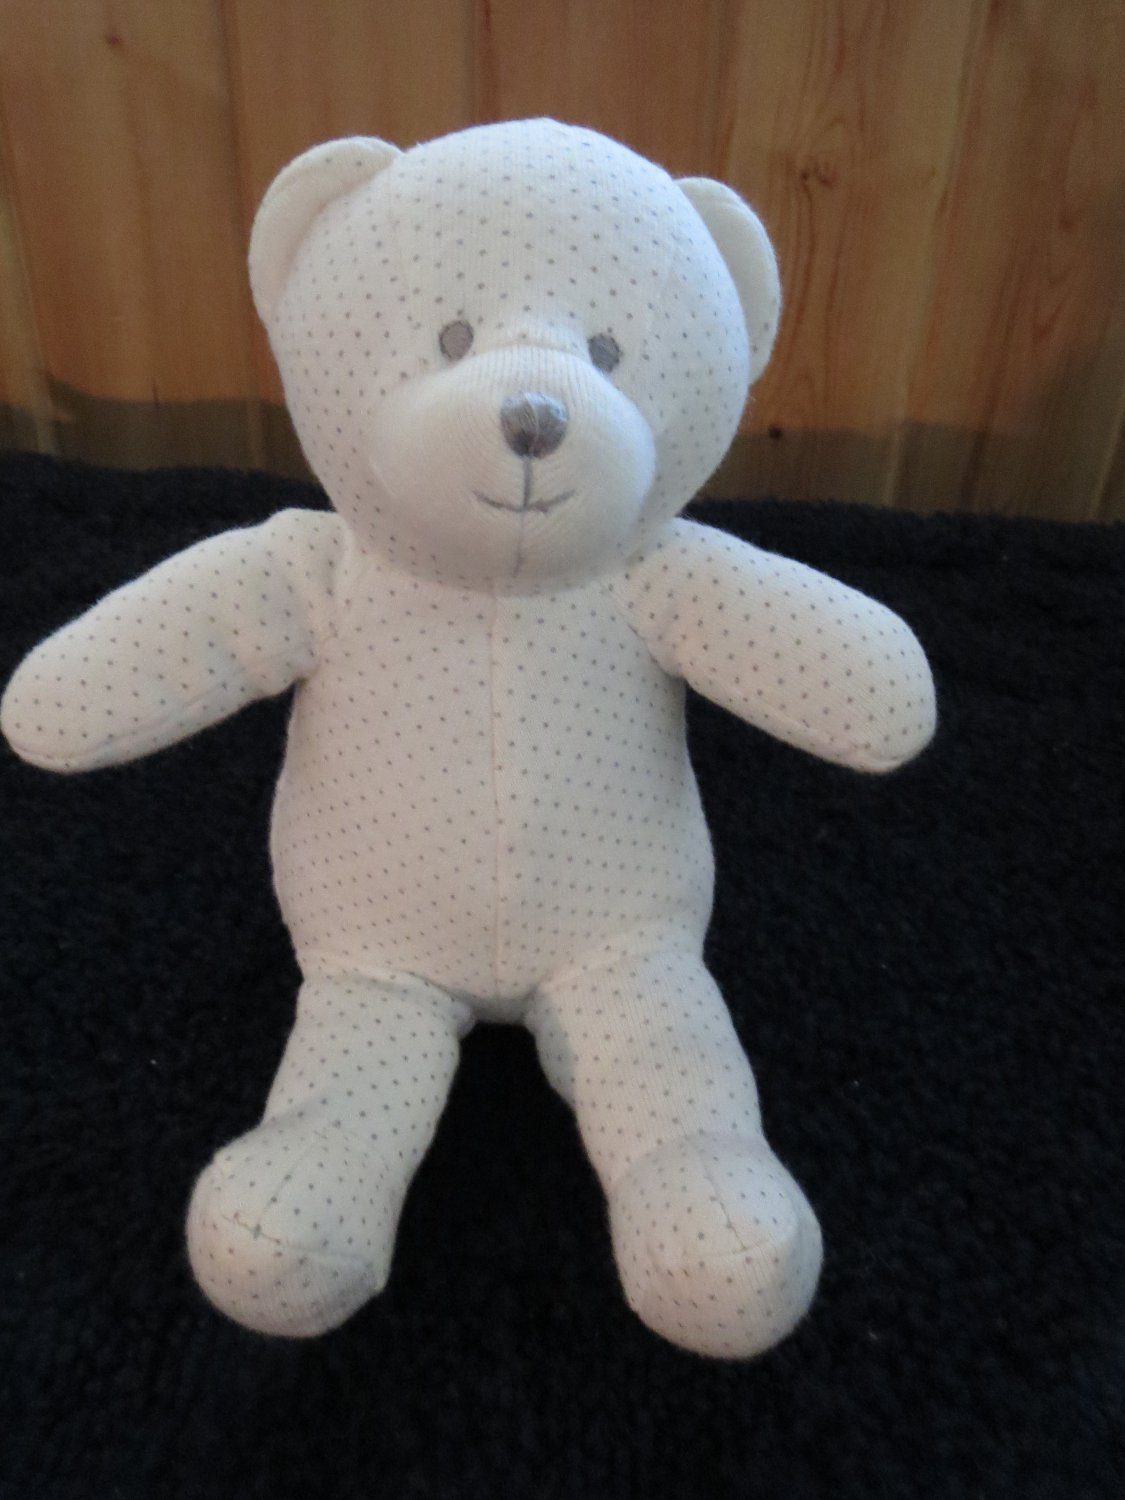 Old Navy White Knit Teddy Bear With Gray Dots Plush Rattle